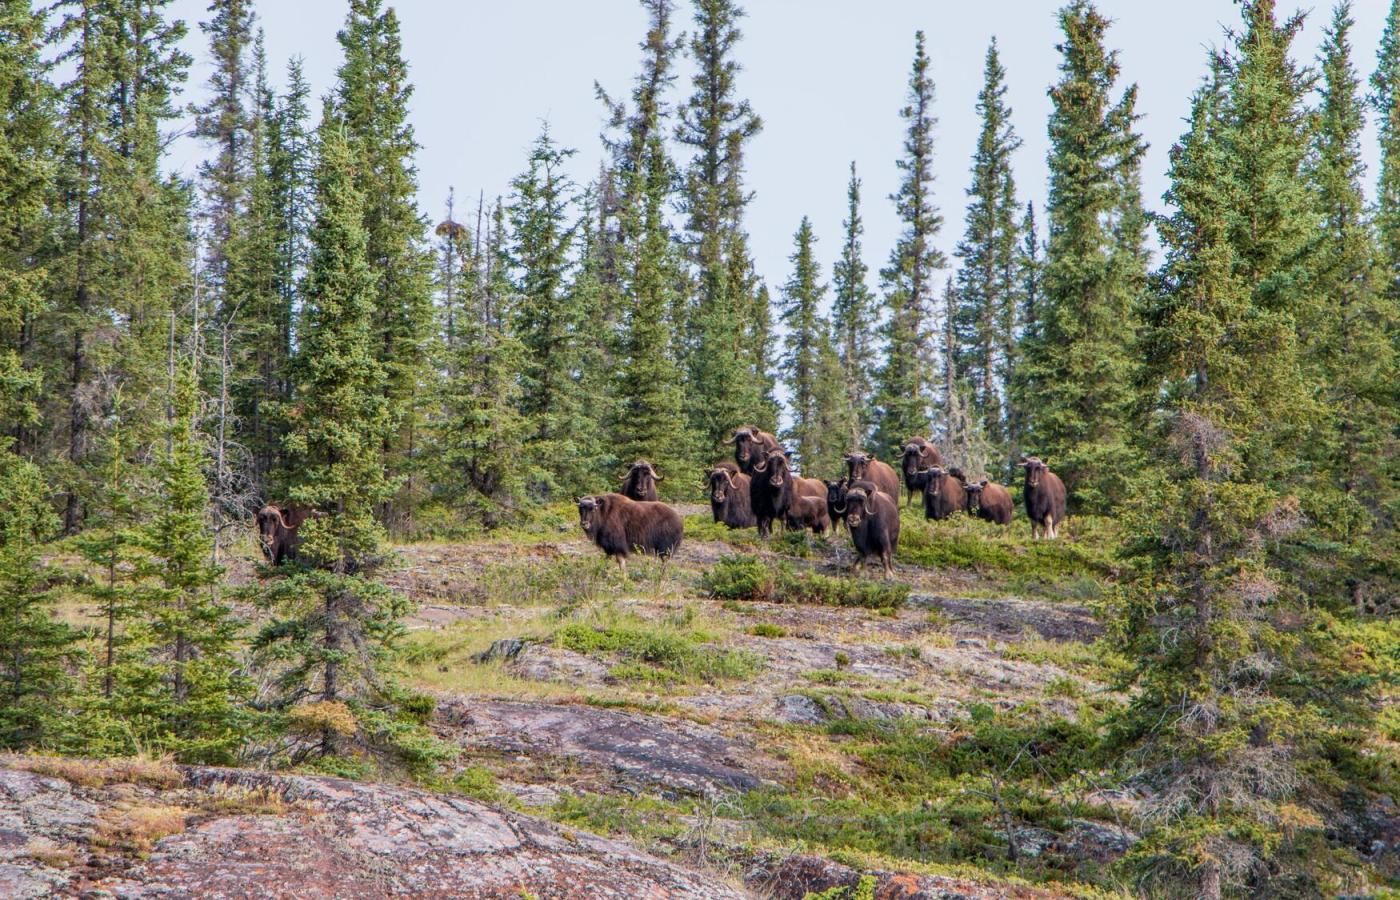 Muskoxen on the shores of the East Arm of Great Slave Lake